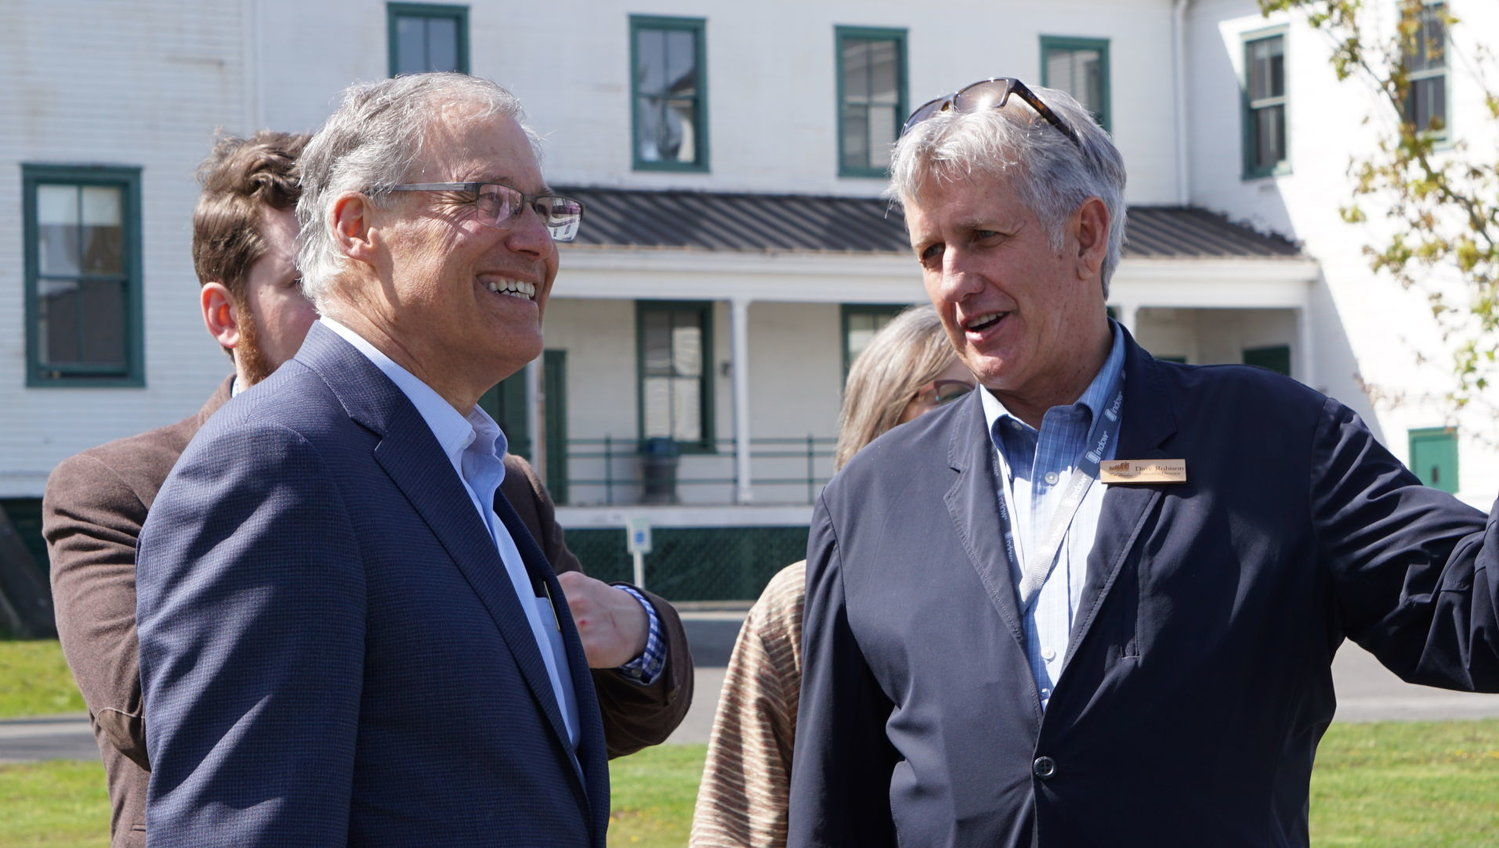 Gov. Jay Inslee speaks with Fort Worden PDA Executive Director Dave Robison during Inslee's first visit to the historic site since being elected.